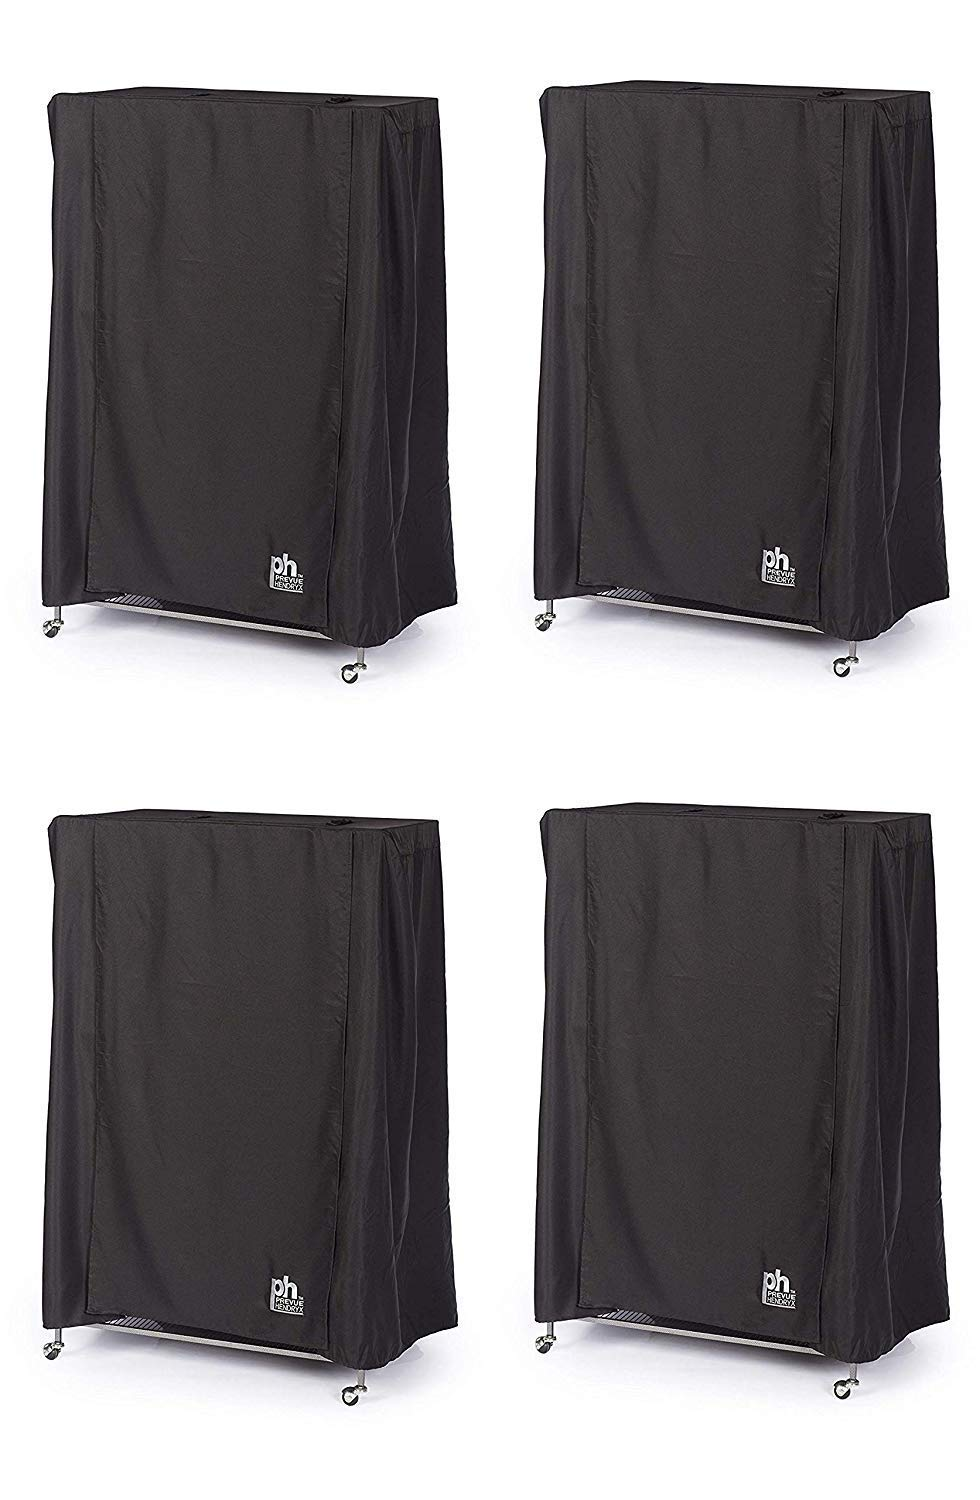 Prevue Hendryx Pet Products Good Night Bird Cage Cover, Large, Black (Pack of 4) by Prevue Hendryx